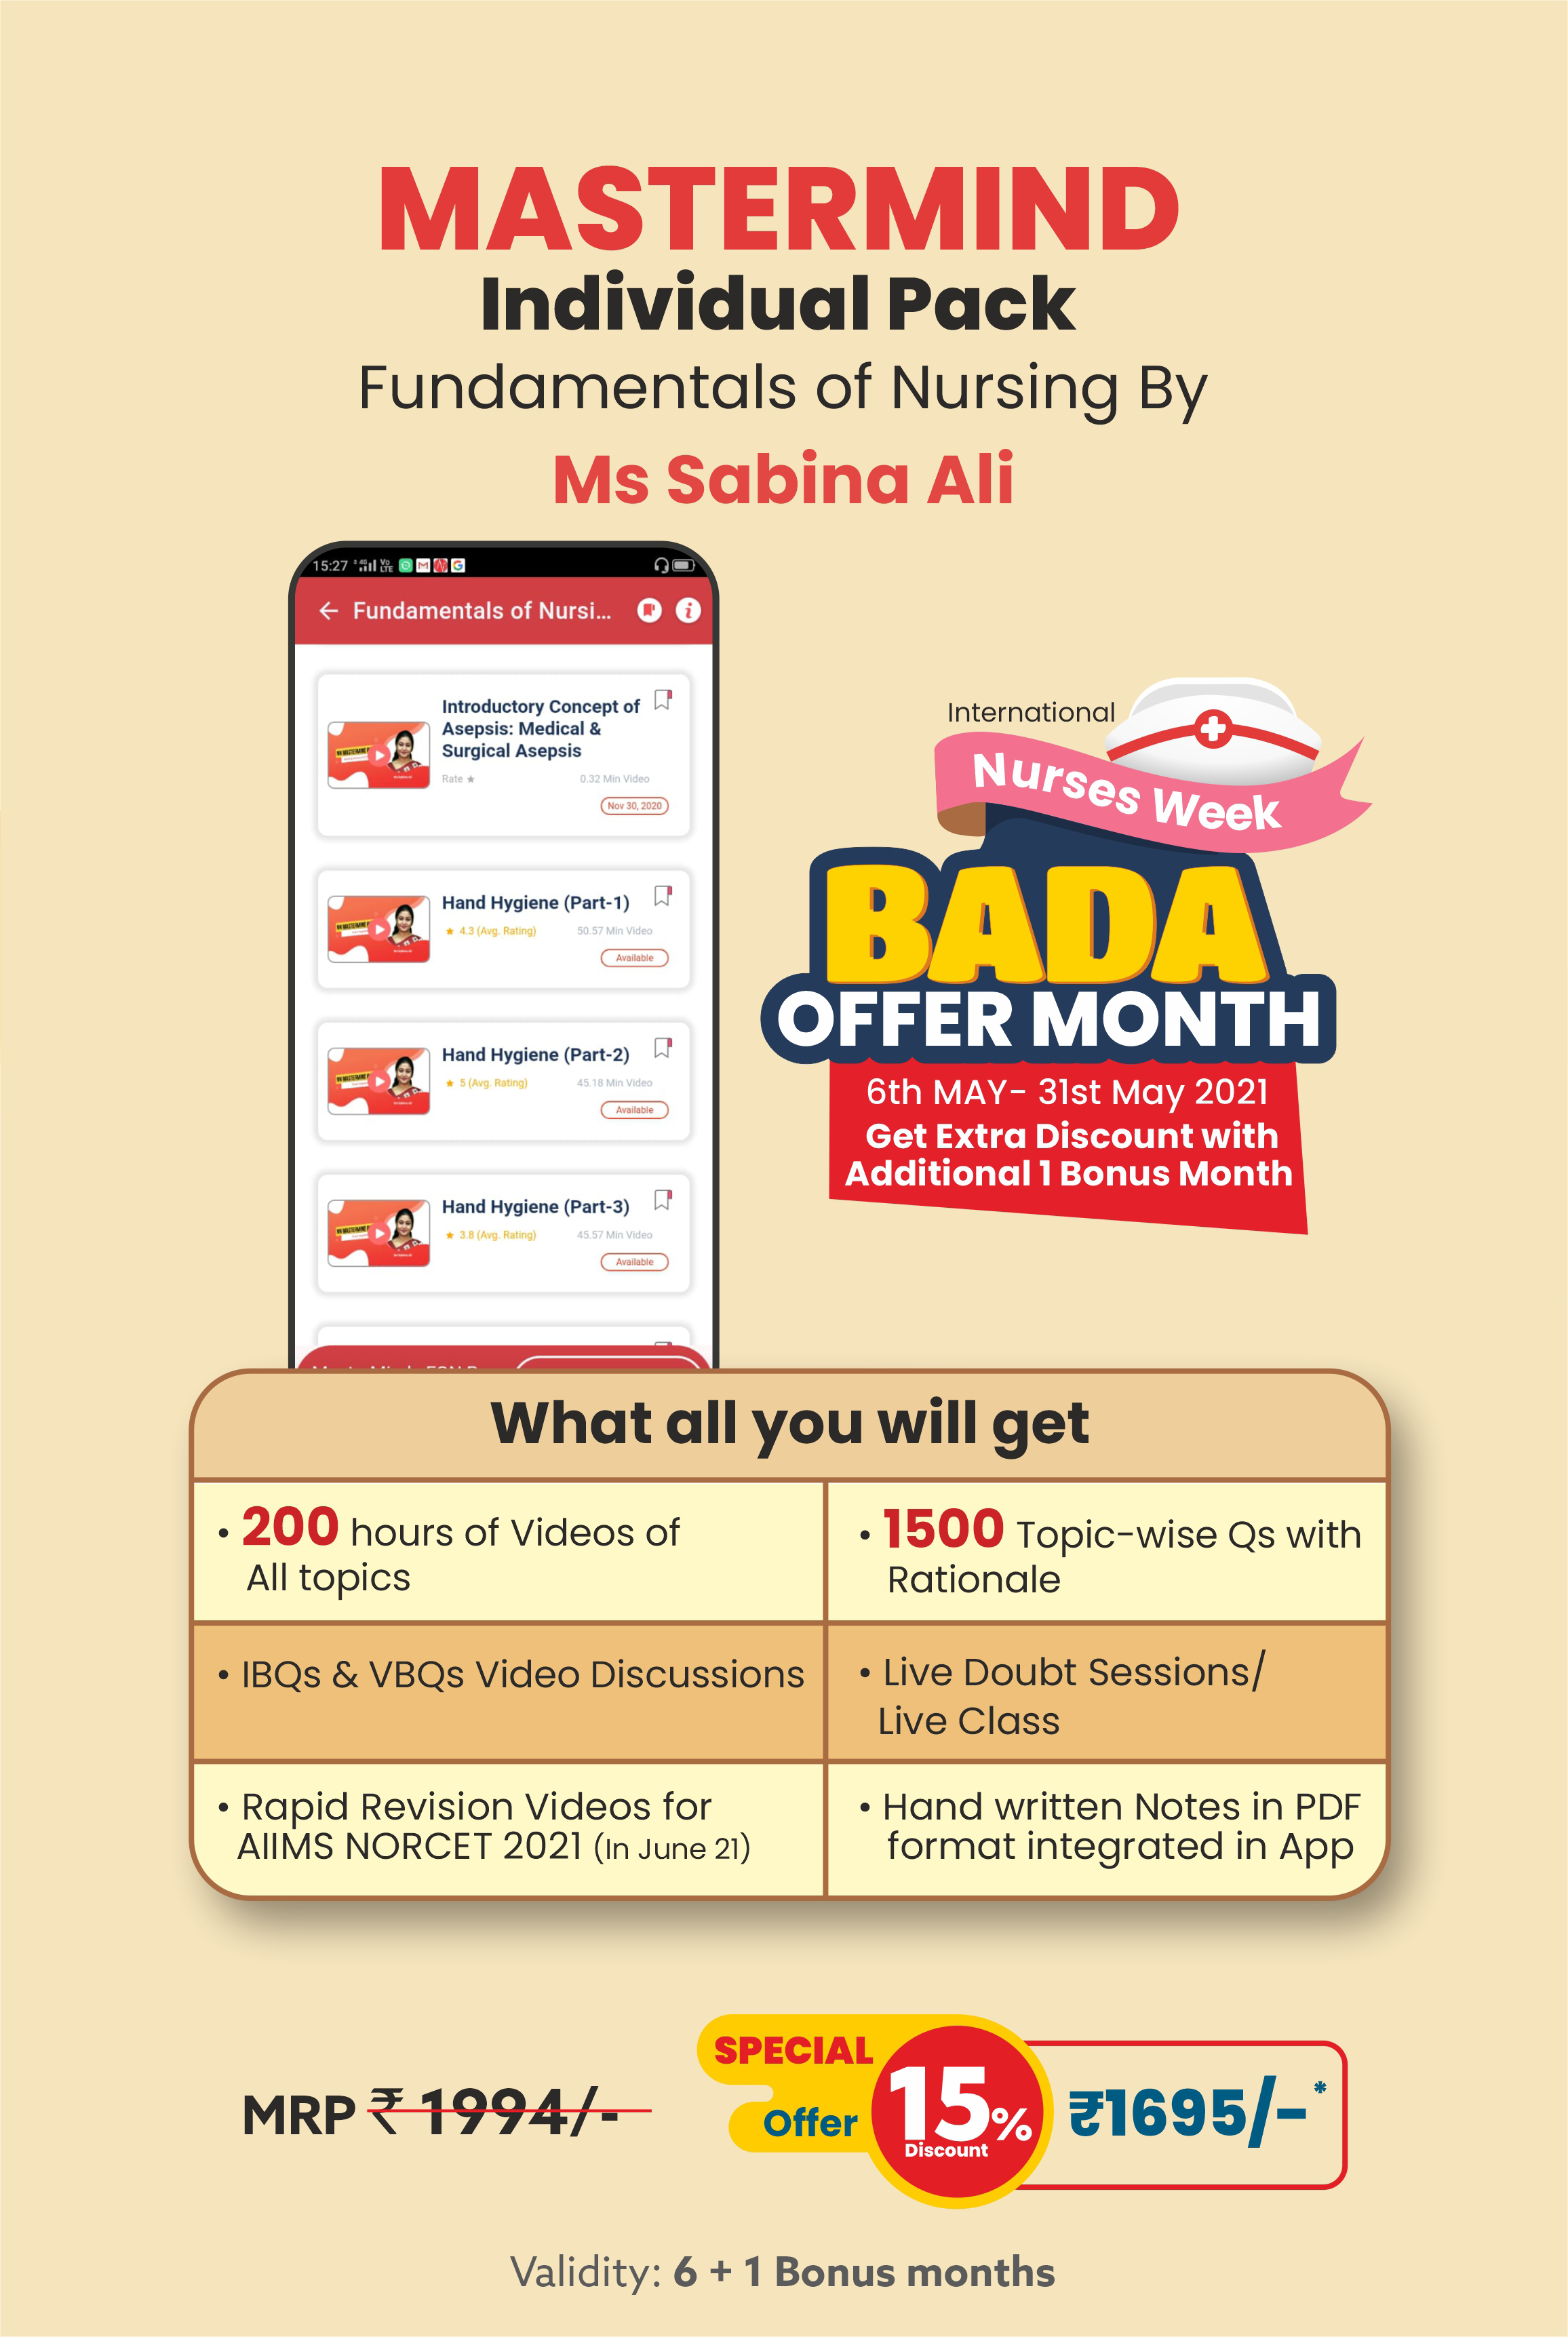 Nurses week - Bada Offer Month Individual Pack-Ms Sabina Ali